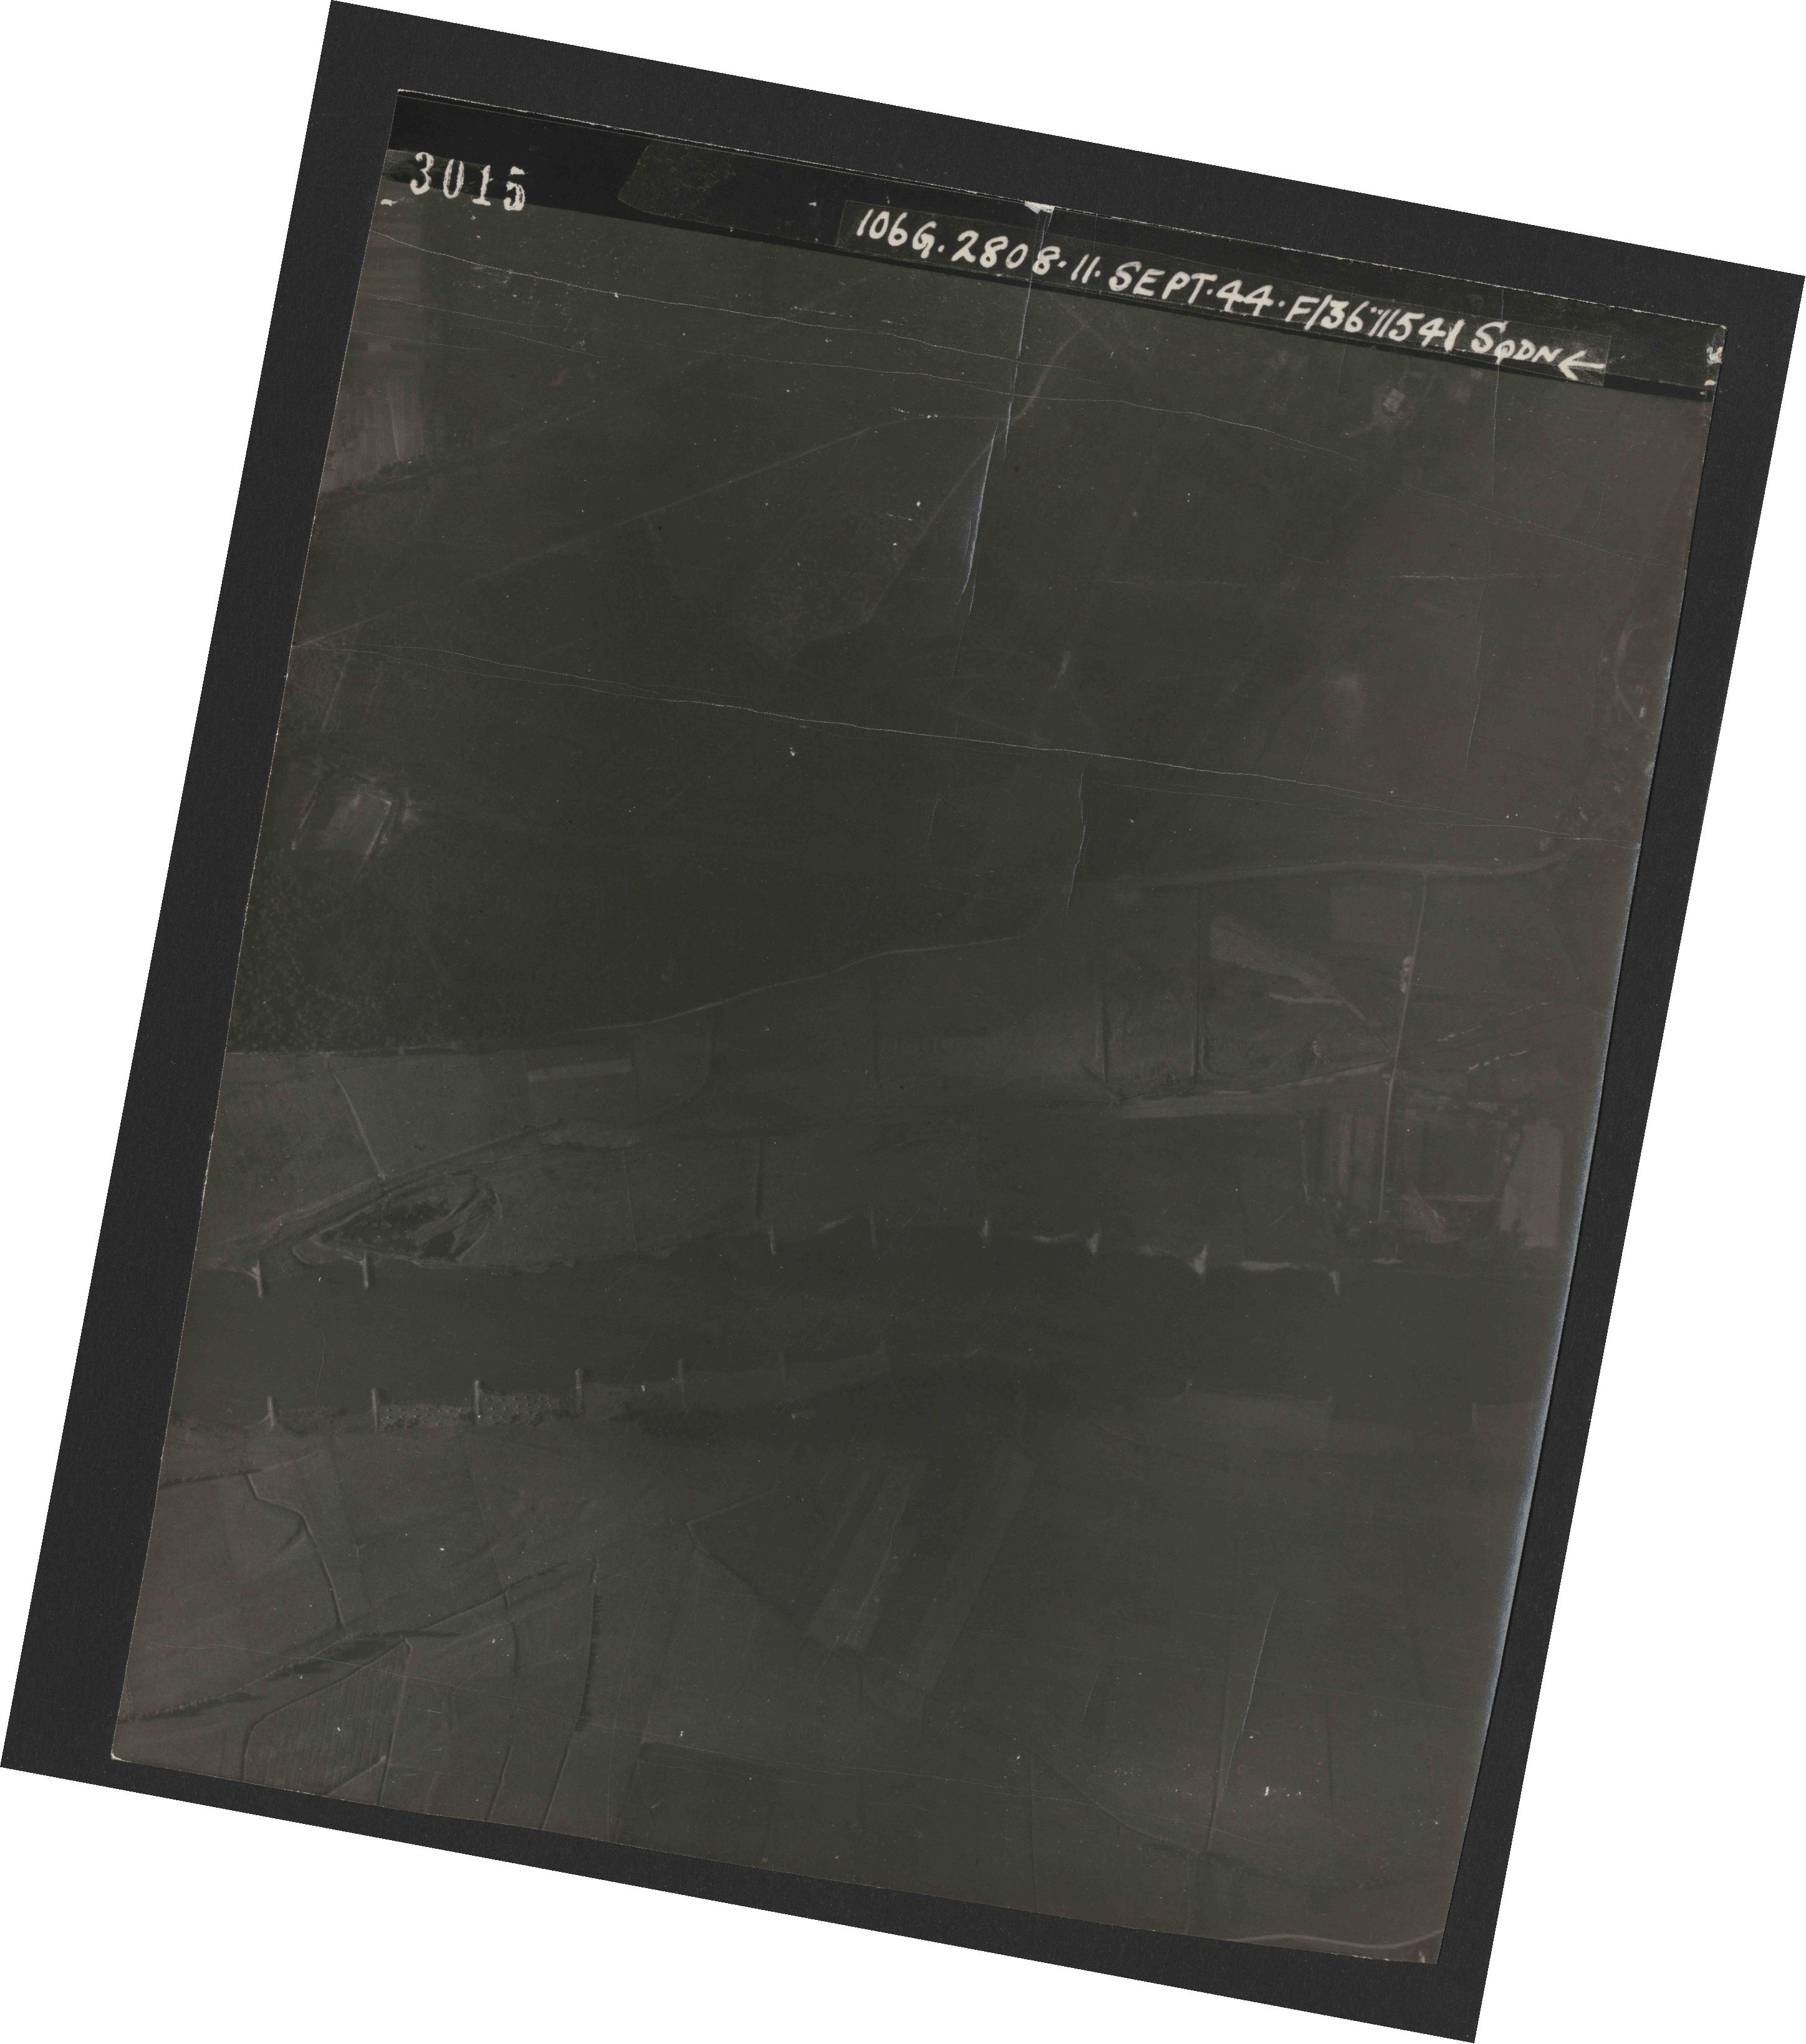 Collection RAF aerial photos 1940-1945 - flight 312, run 01, photo 3015